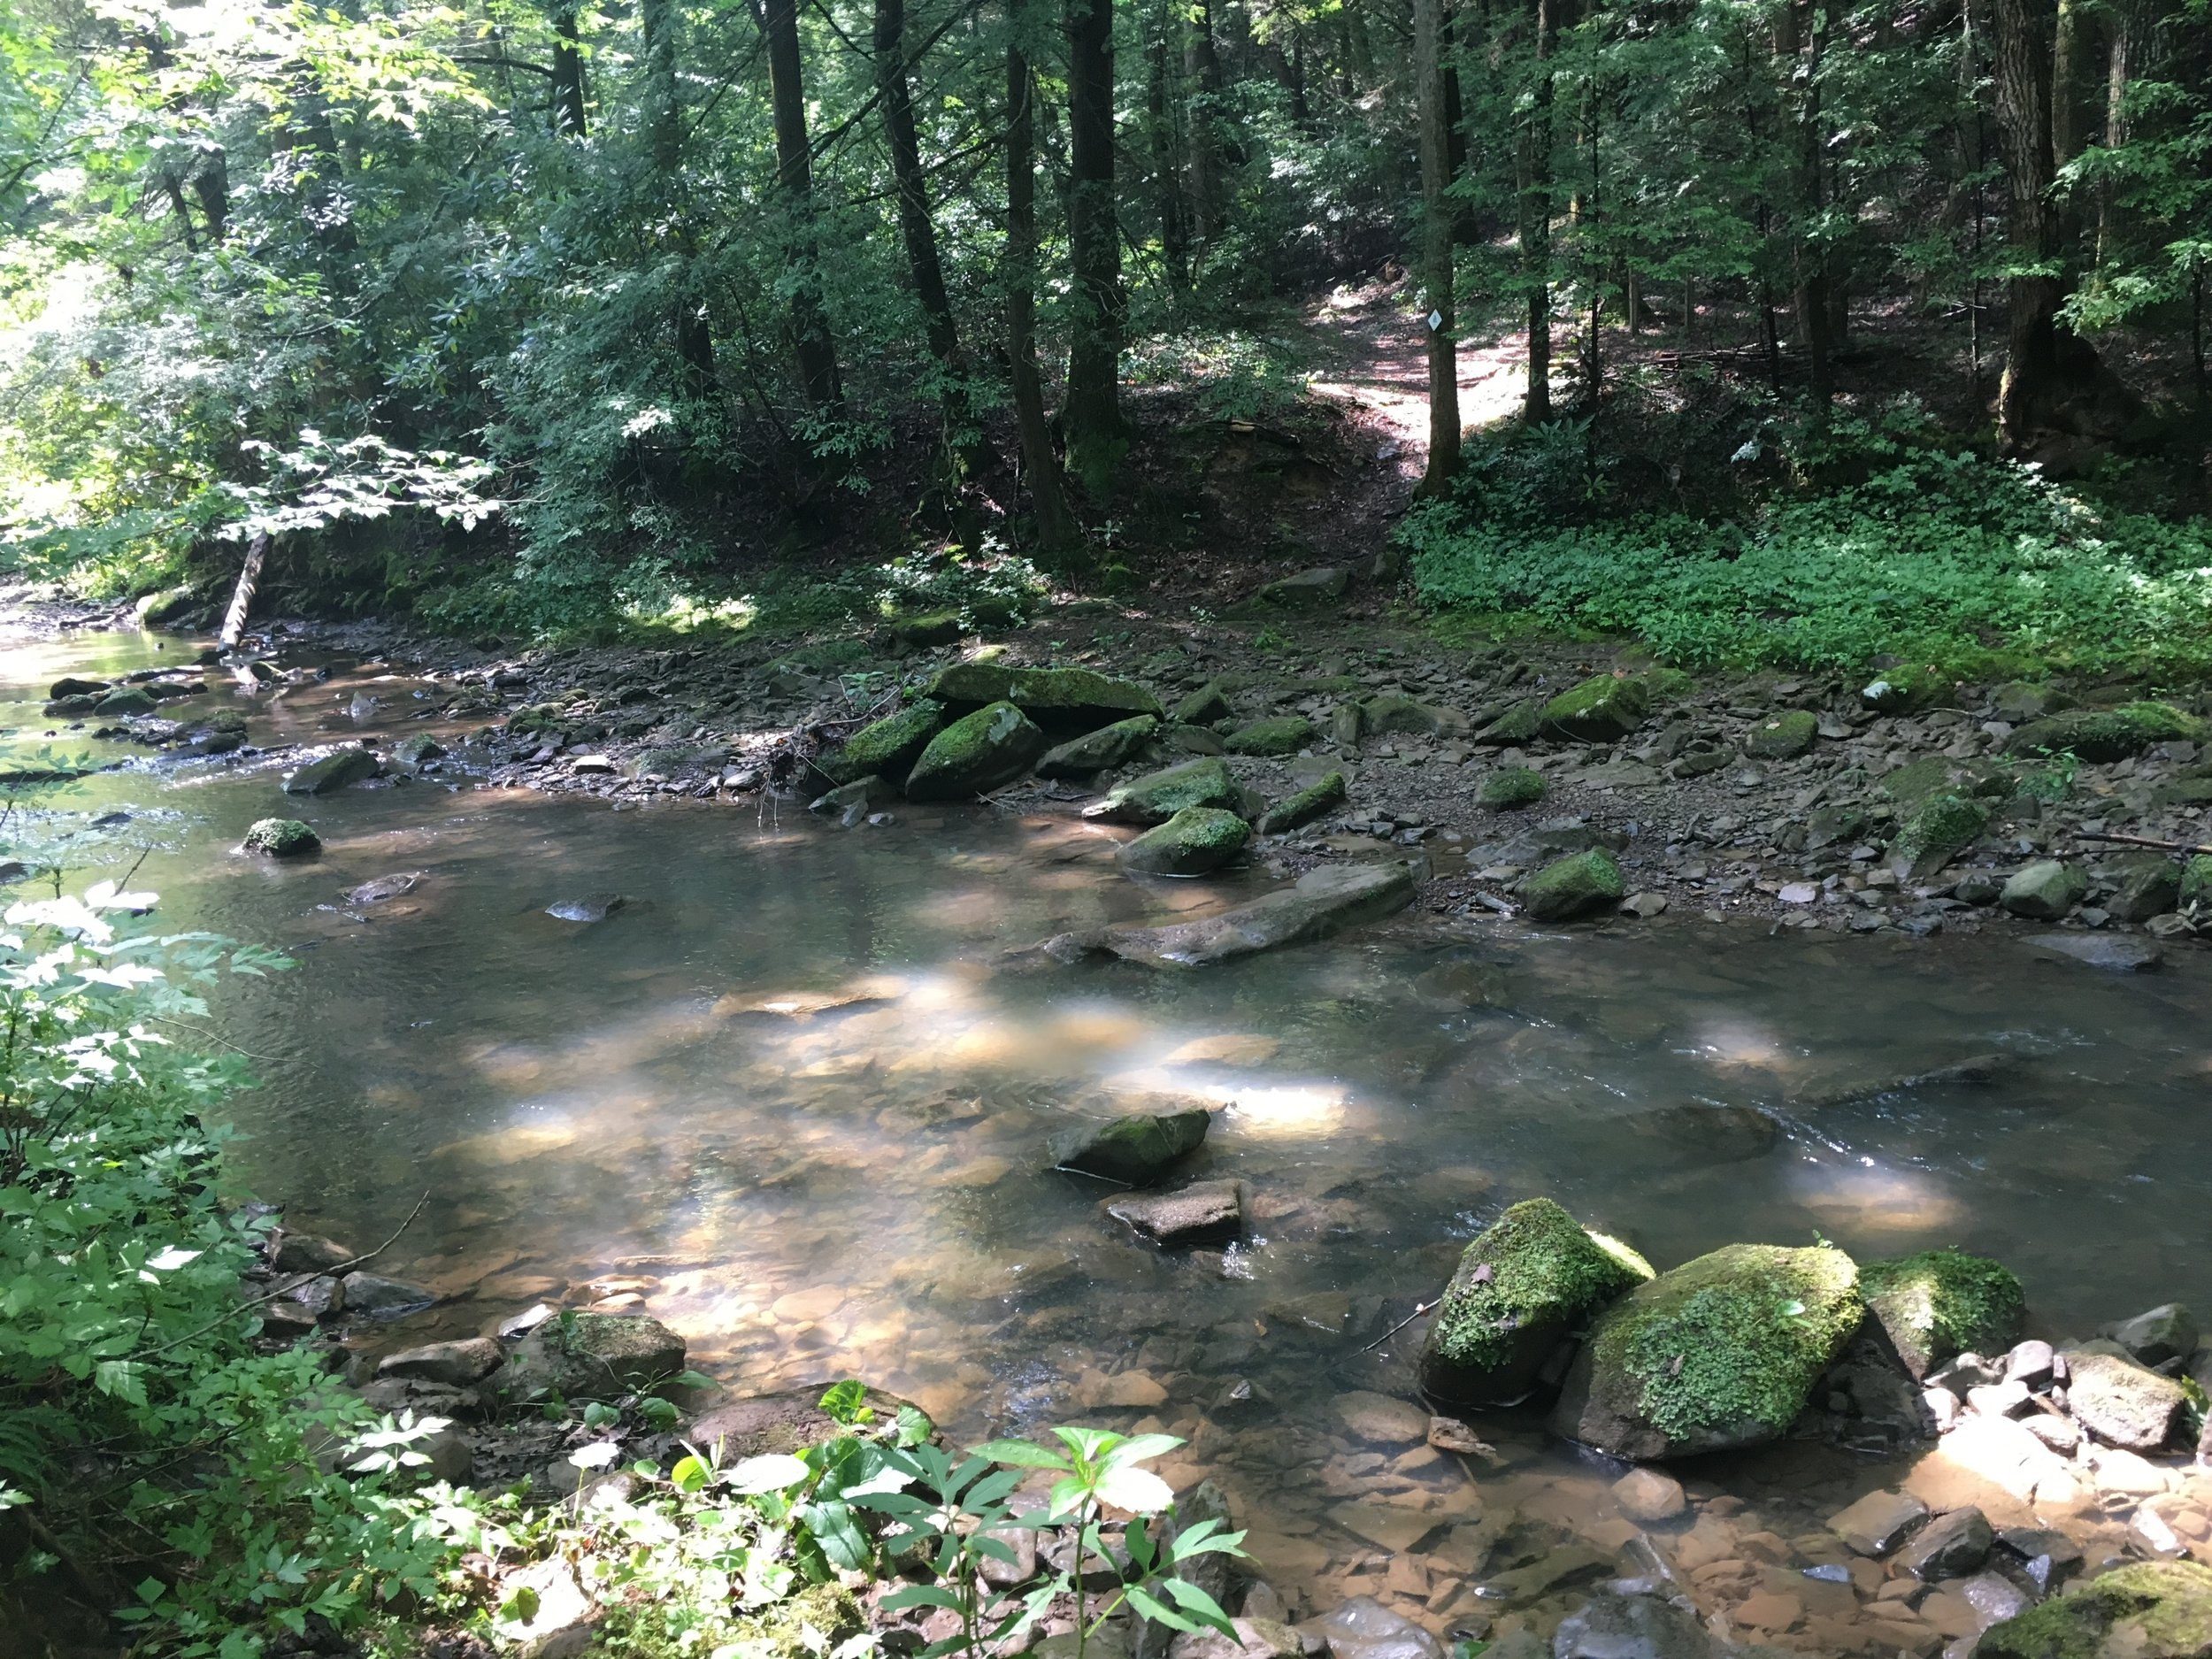 Crossing the creek at Margaret Hollow